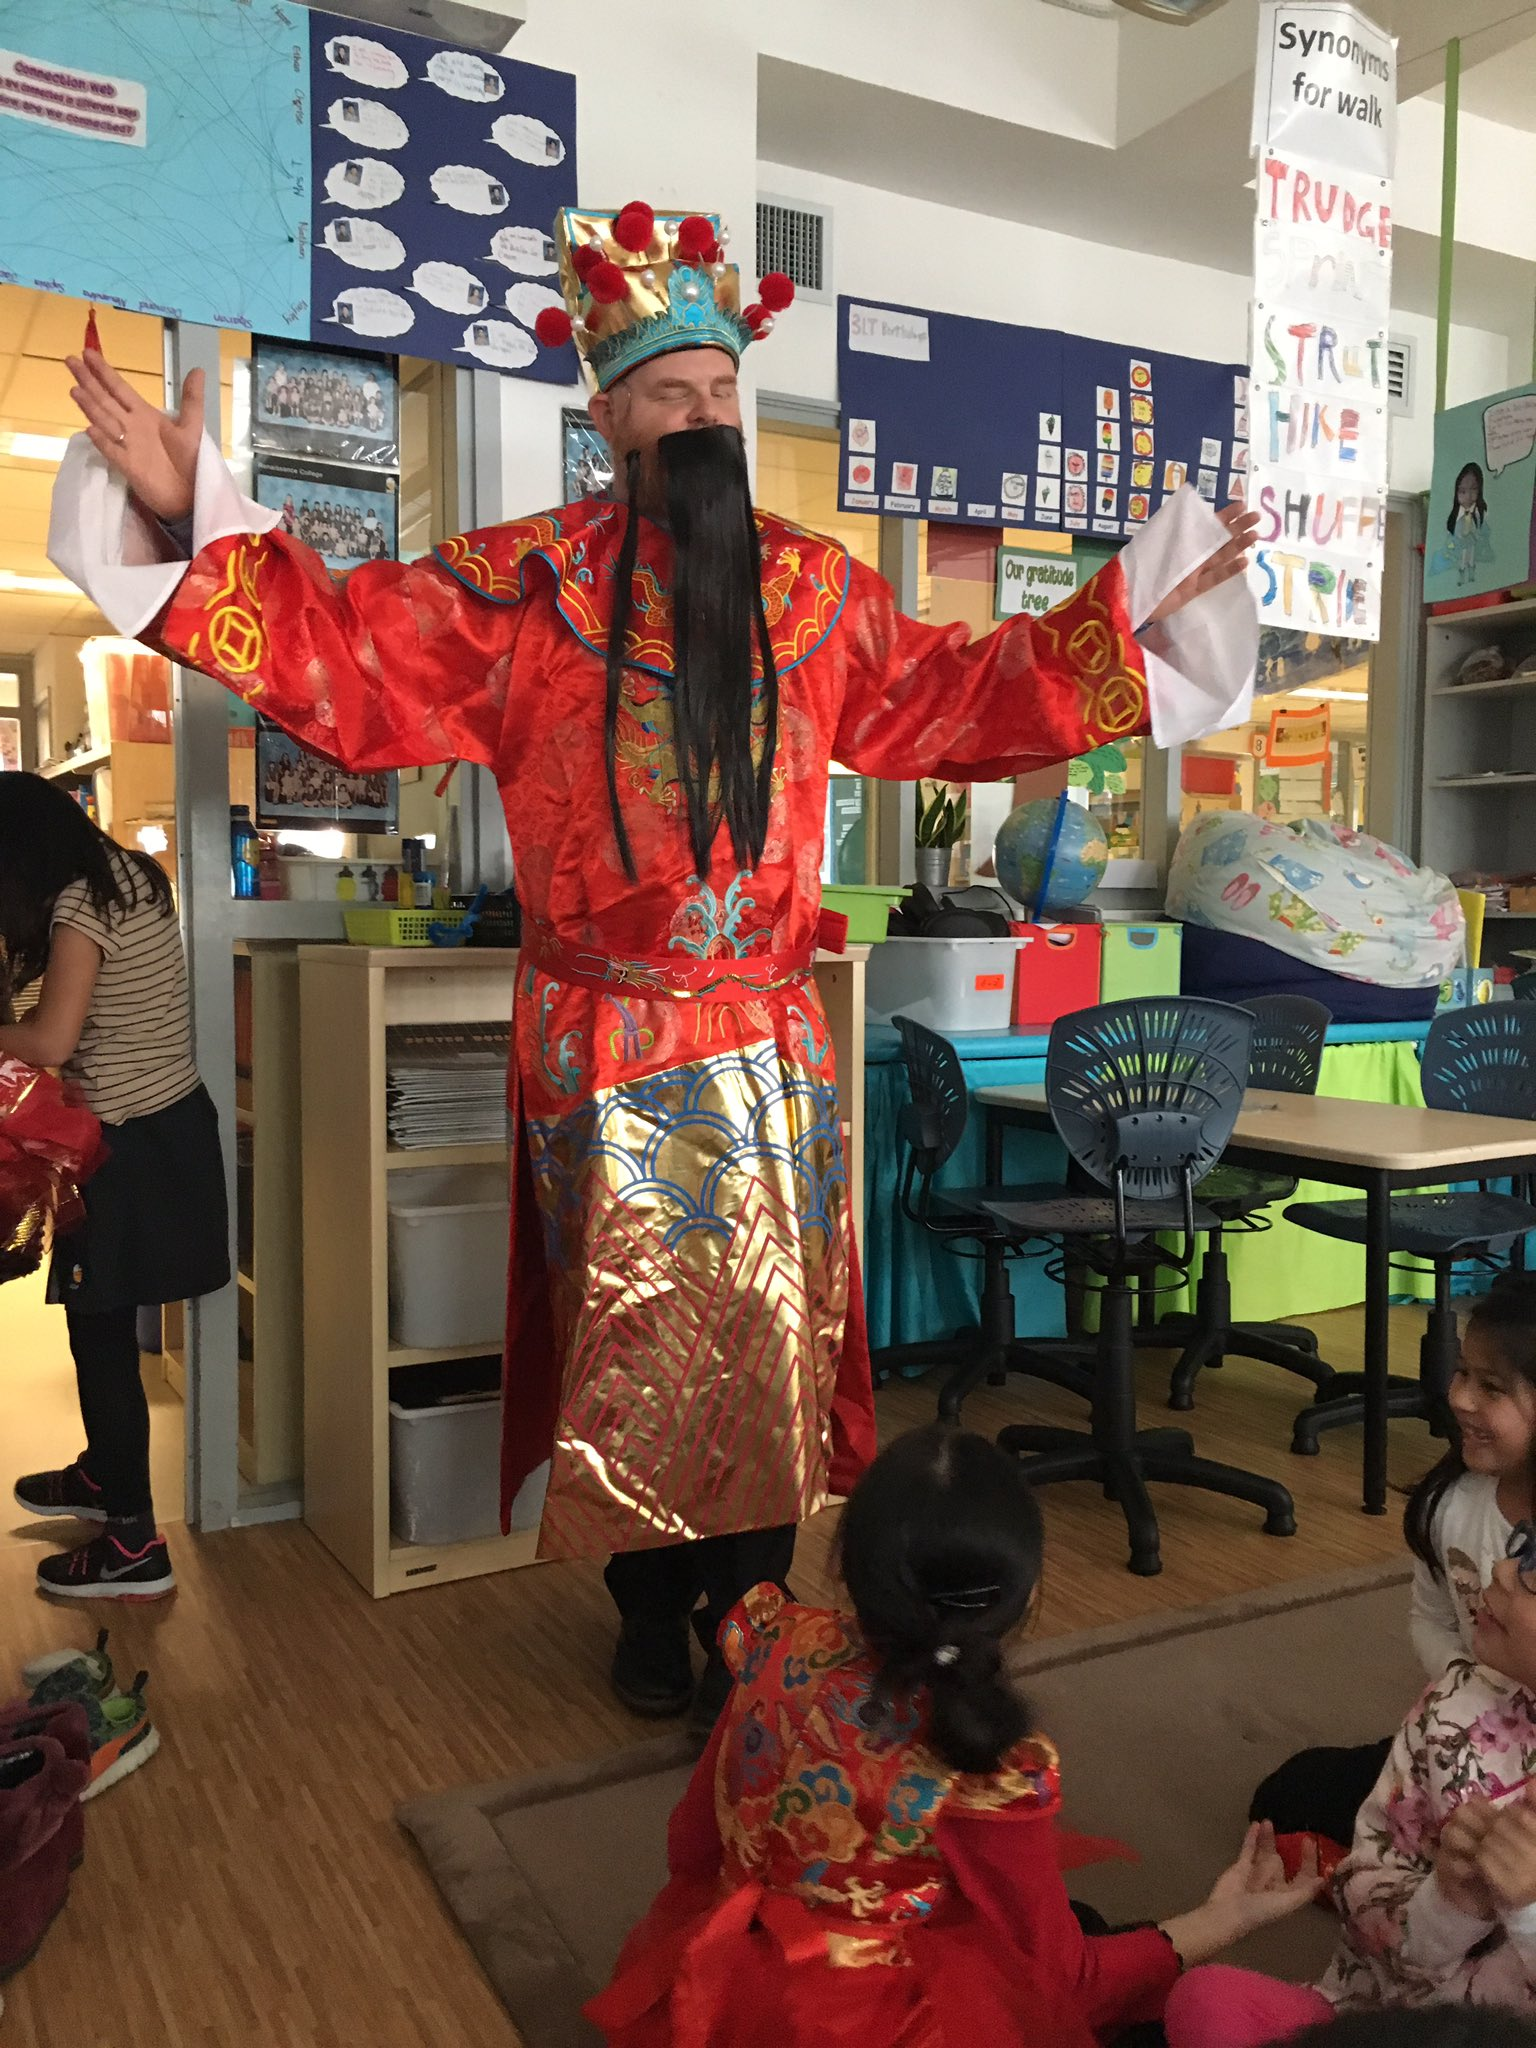 @RESVTlibrary the god of wealth came to our classes today to give us candy! Yay!!! He comes every CNY. #rchkpyp #awesome3LT https://t.co/LigmCAJFqy